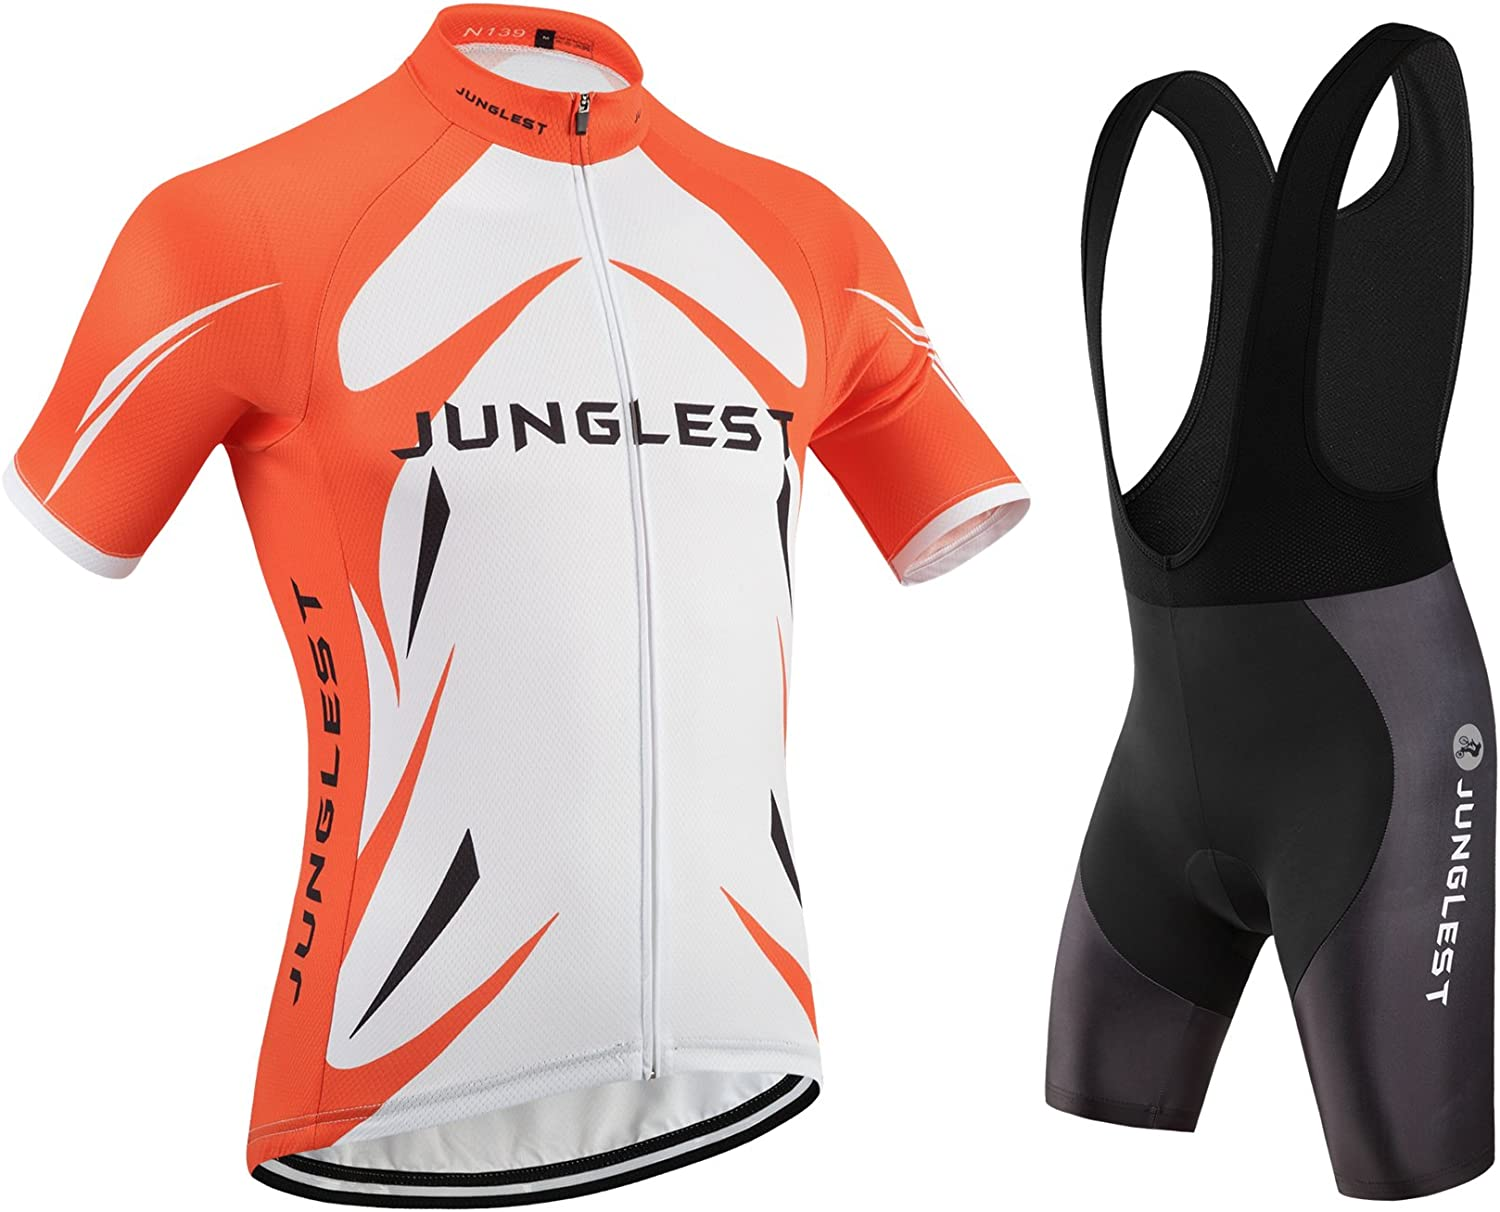 Cycling jersey Set, Maillot de Cyclisme Wen Homme Short sleeve Manches Courtes(S5XL,option bib Cuissard,3D pad Coussin) N139